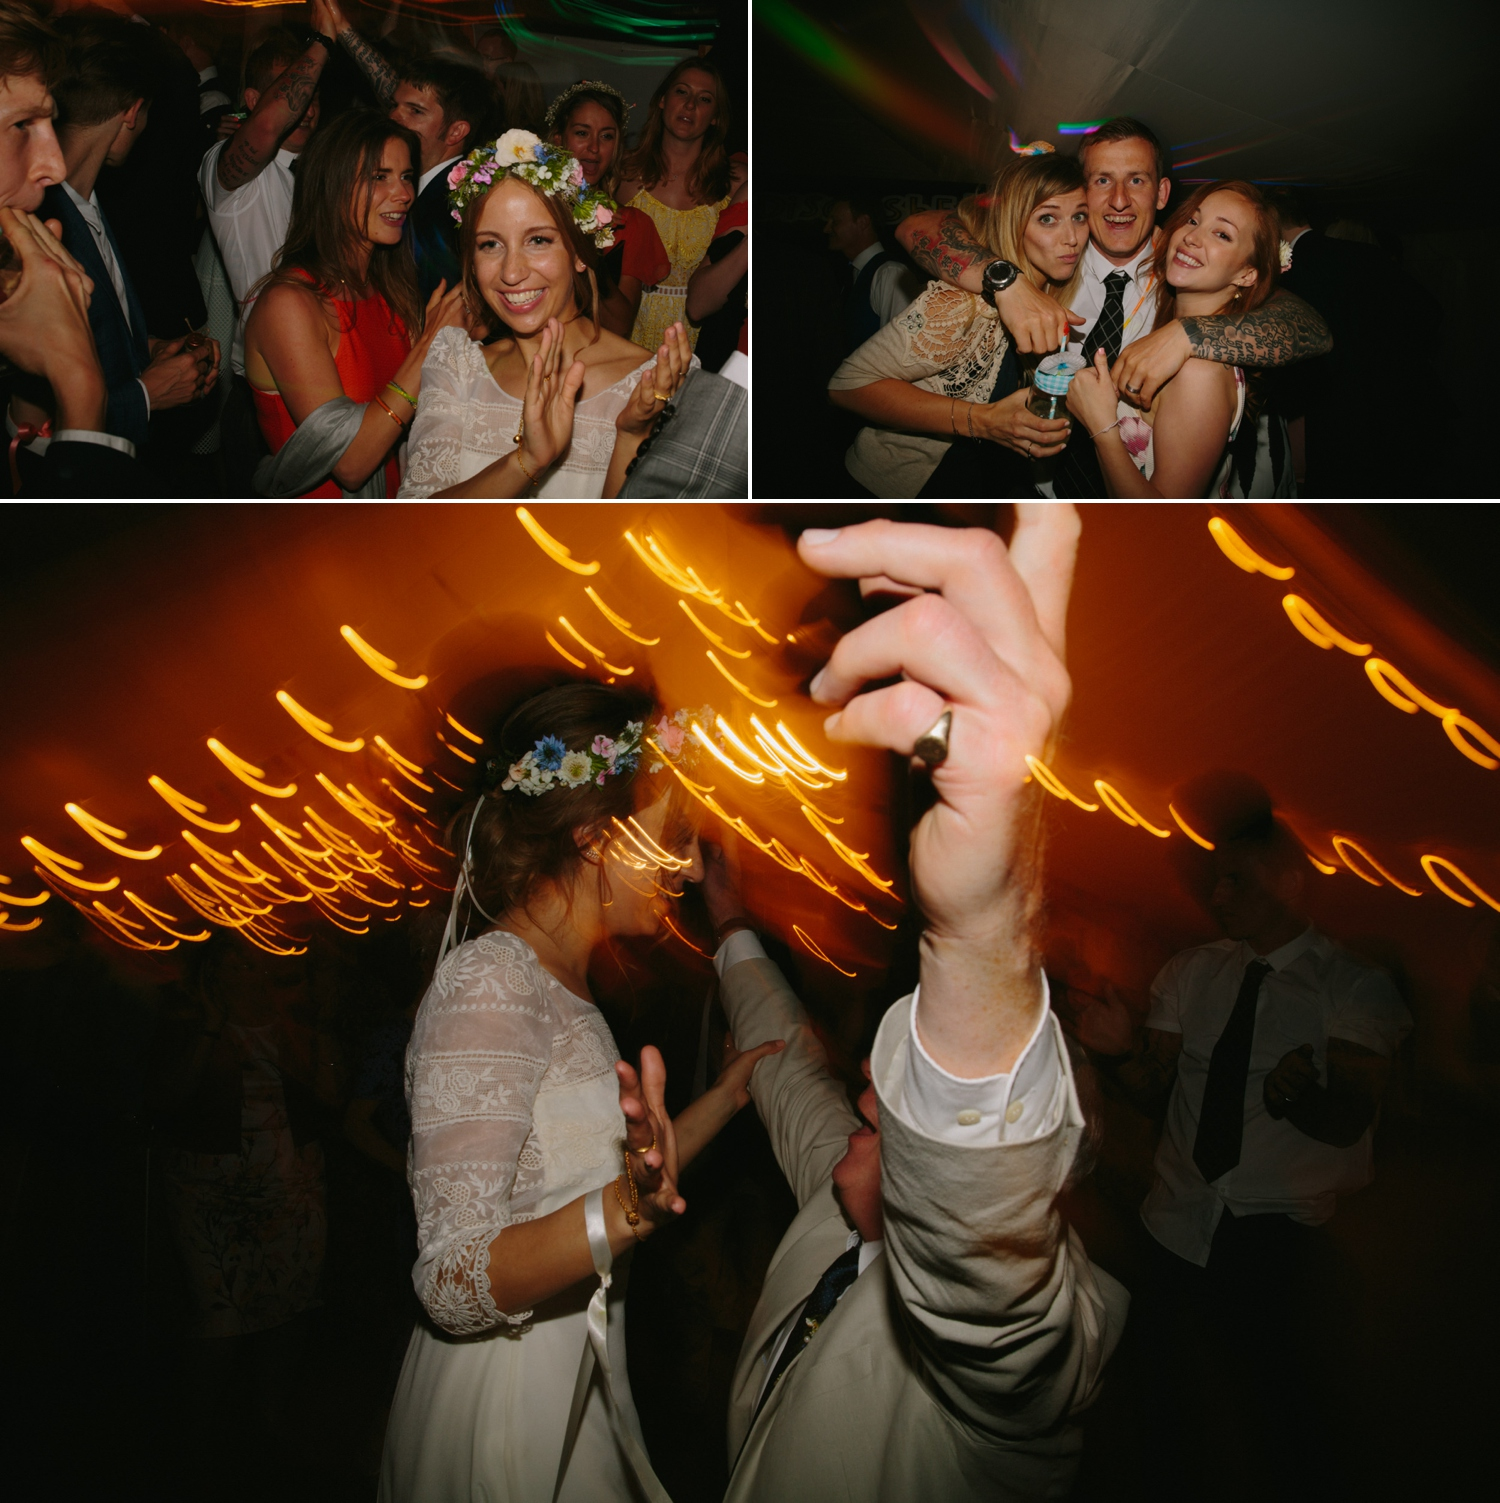 wedding disco at old oak farm